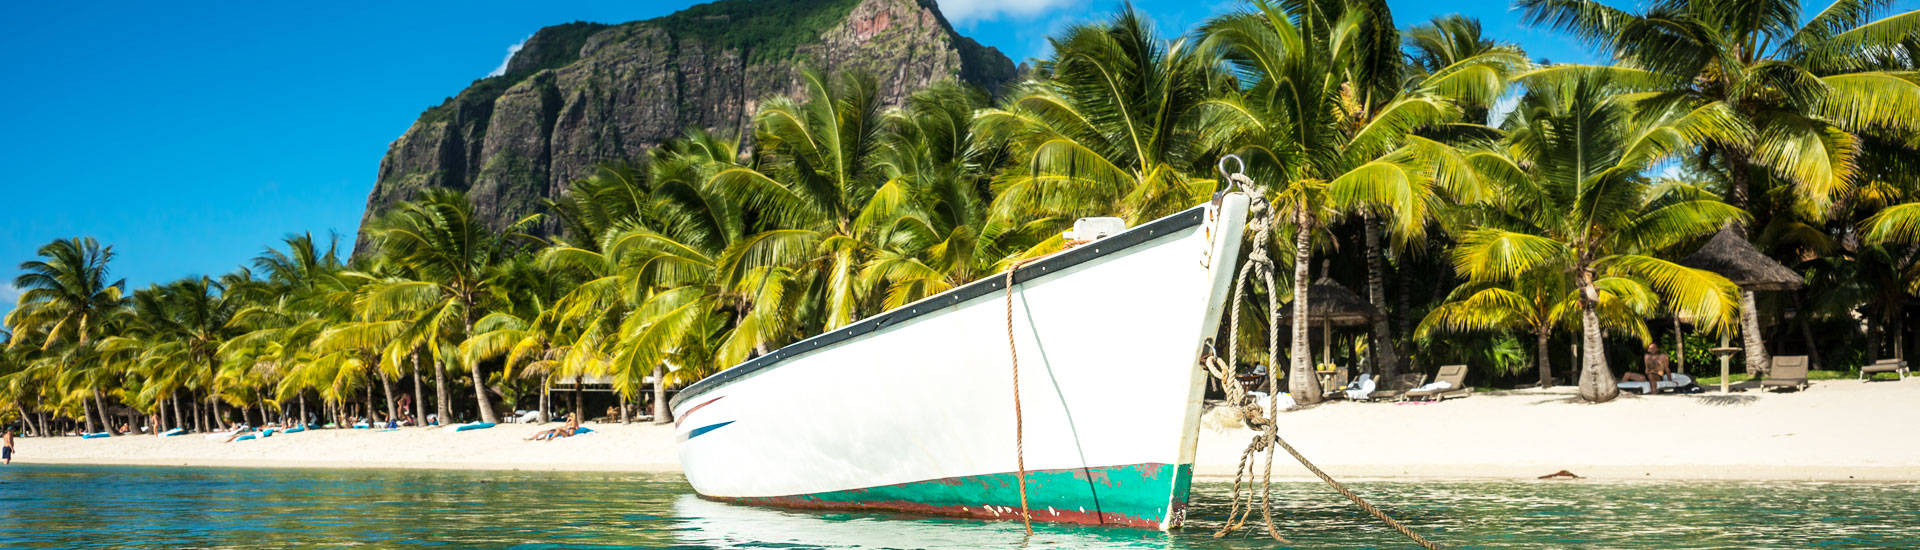 The hidden gems of the Mauritius coastline